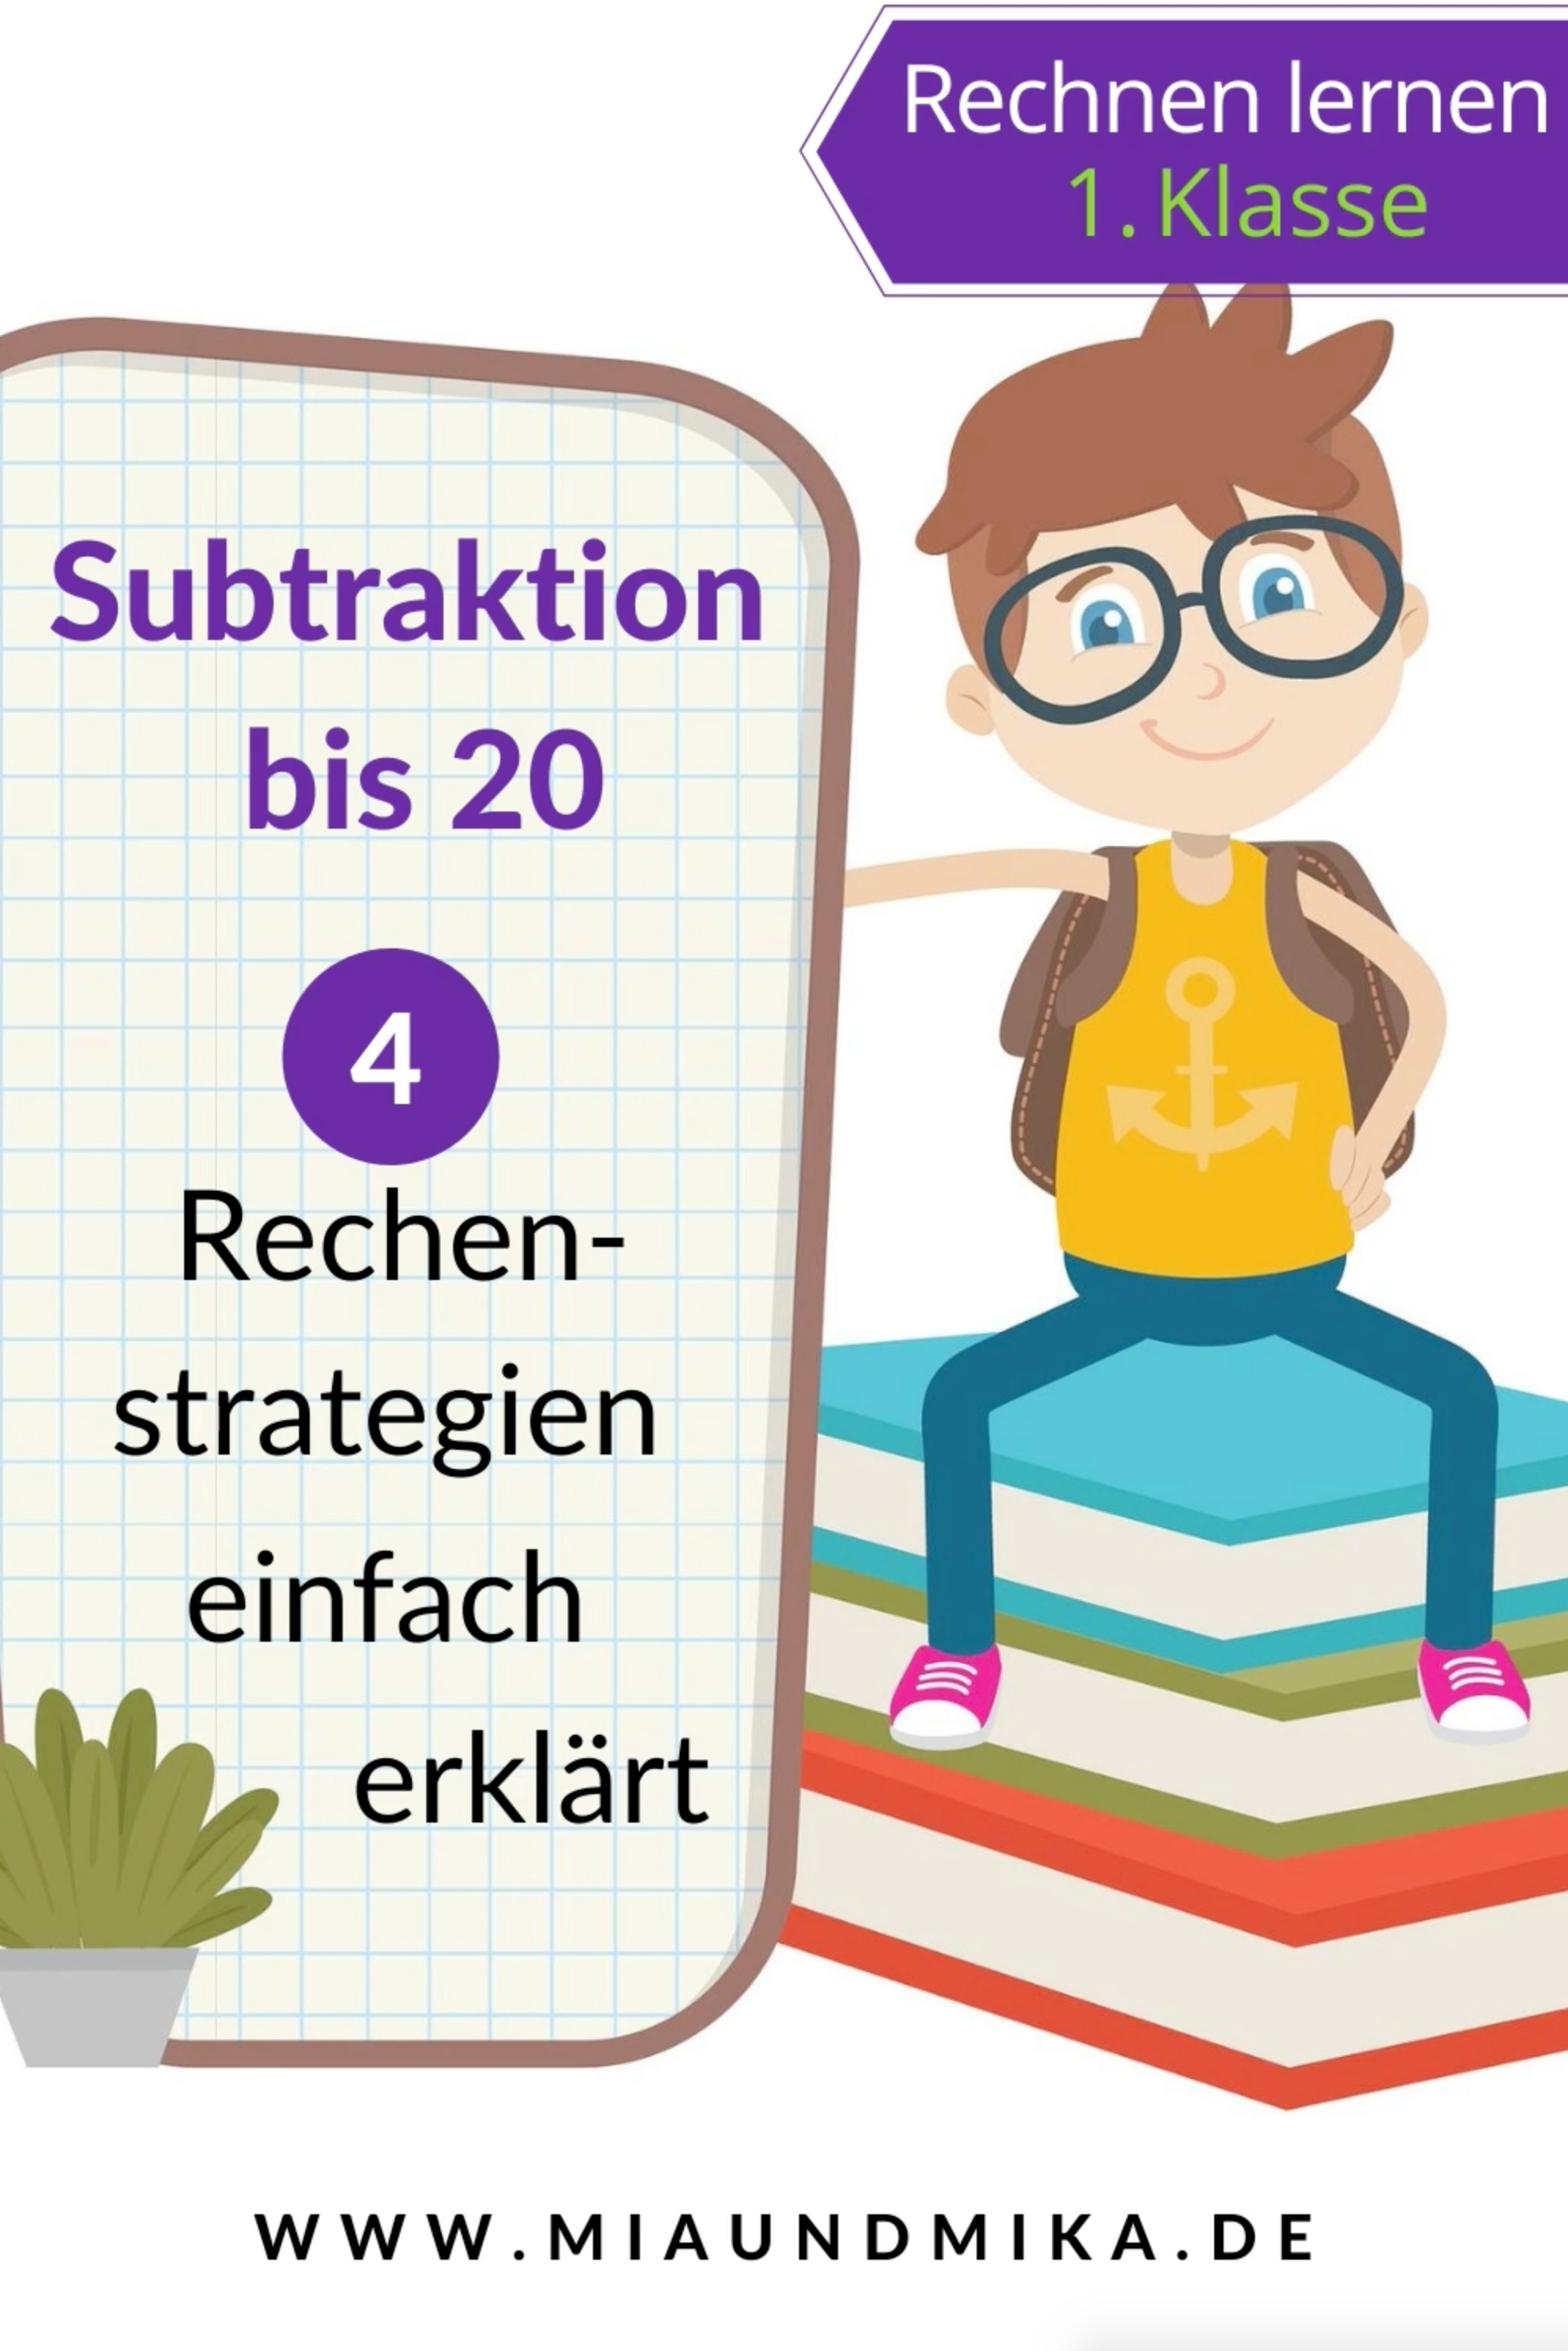 Subtraktion Klasse 1